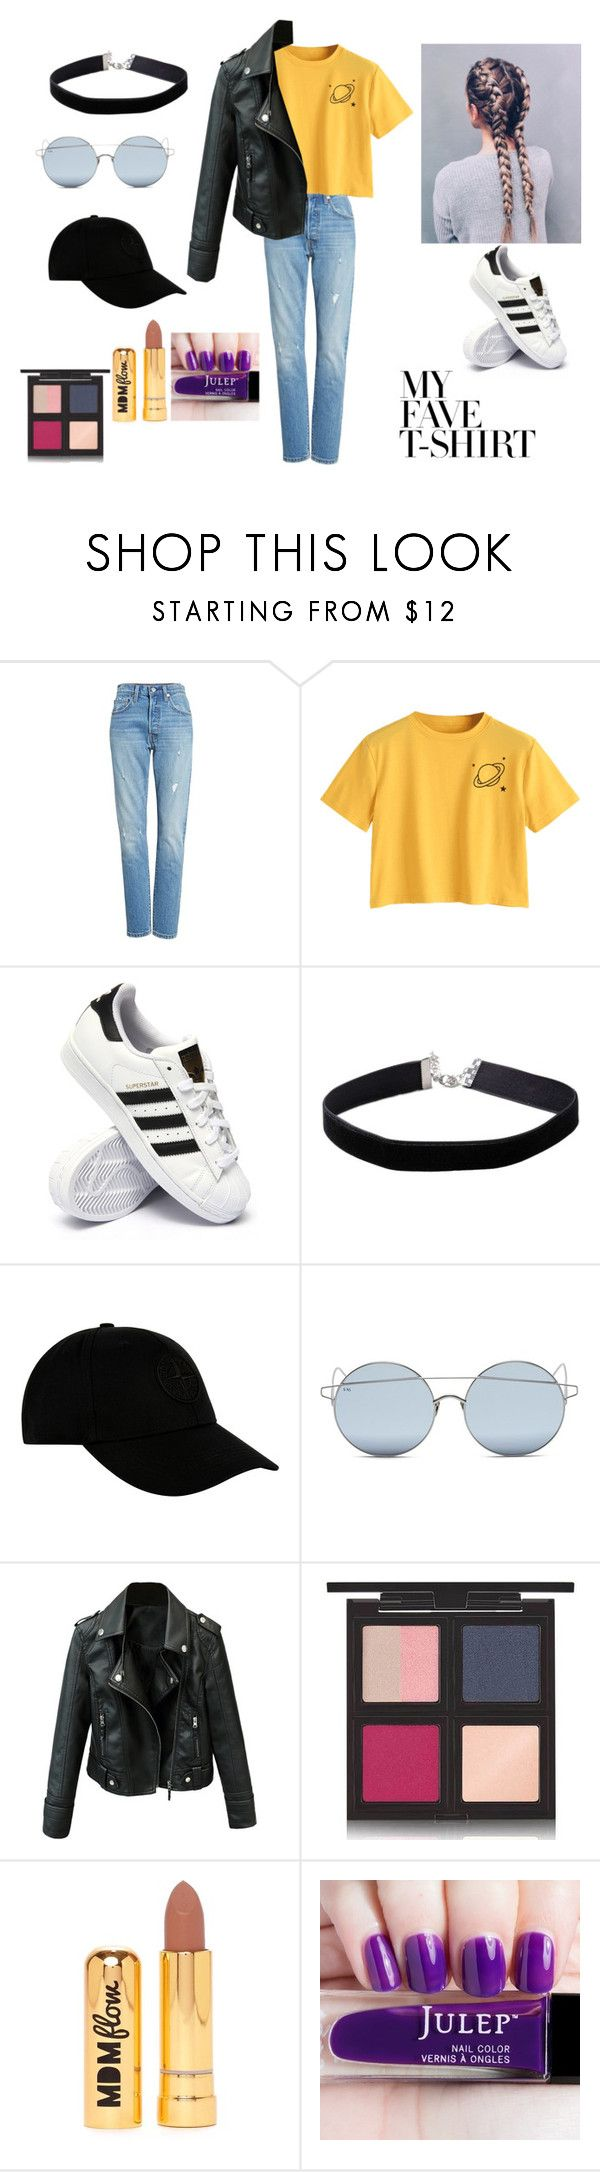 """""""saturn"""" by heart-hope ❤ liked on Polyvore featuring Levi's, adidas, Miss Selfridge, STONE ISLAND, For Art's Sake, The Body Shop, Nasty Gal and MyFaveTshirt"""